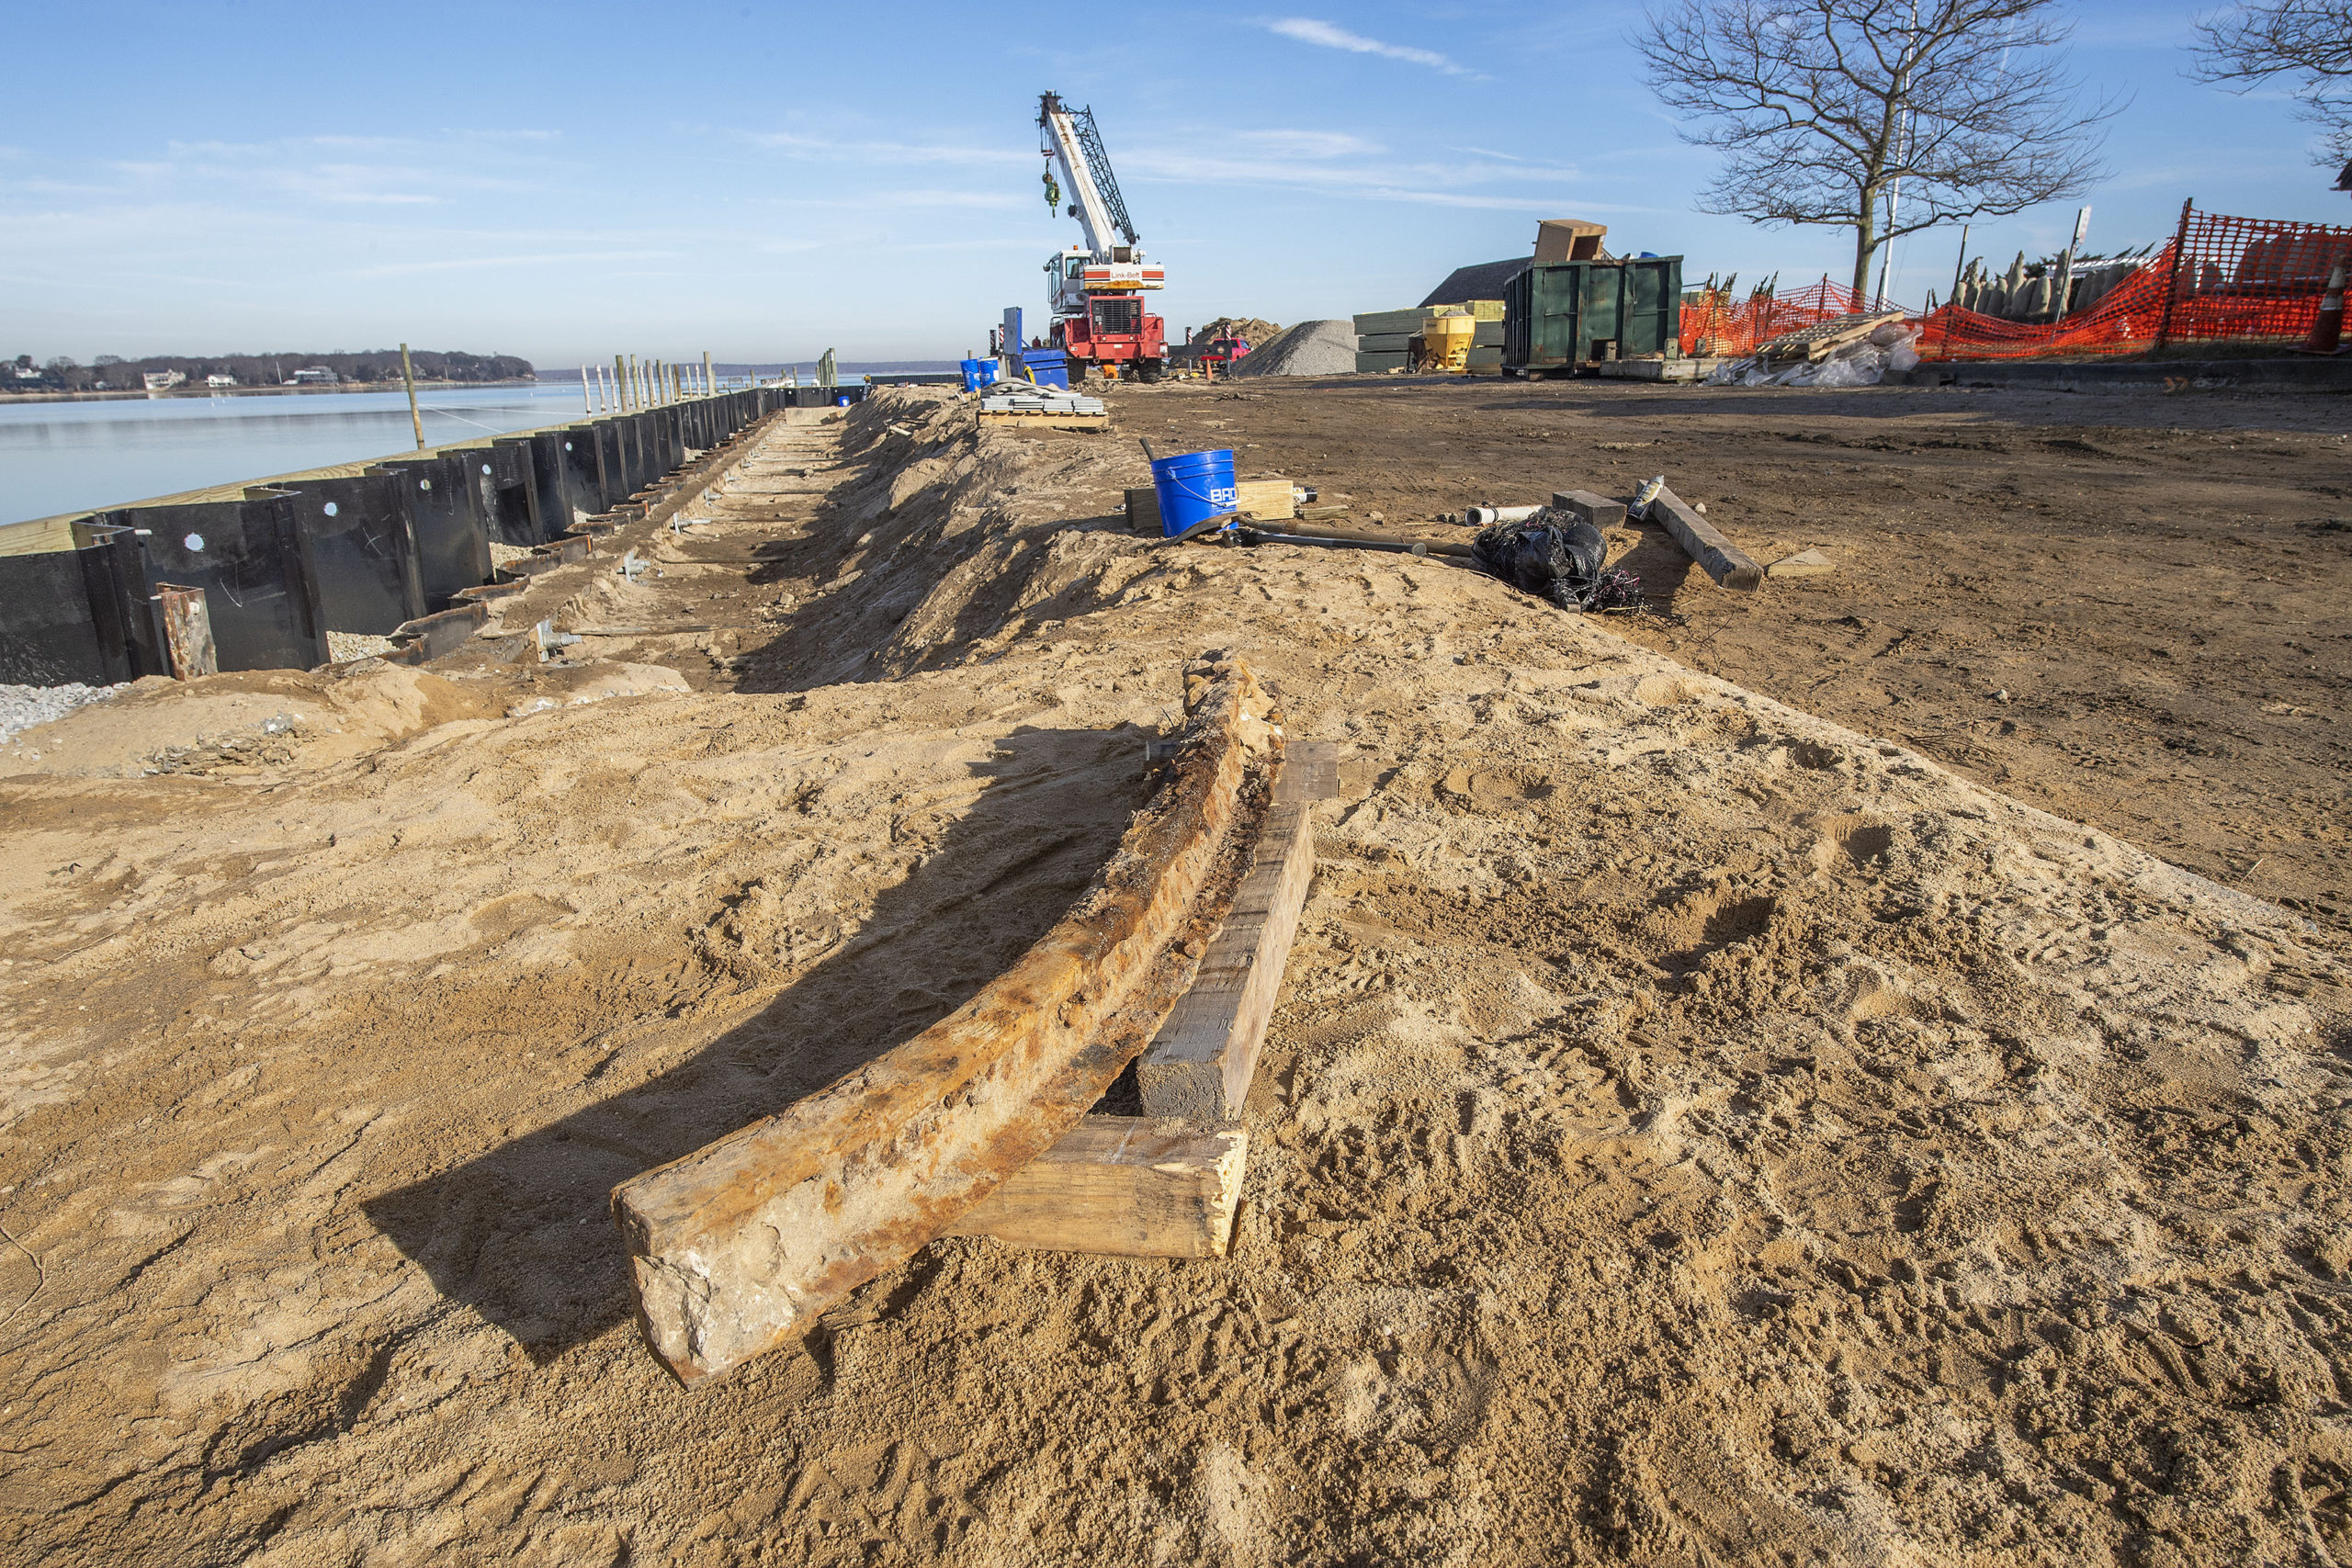 While excavating old material as process of renovating Long Wharf this past week, a crew from job contractors Chesterfield & Associates, Inc. unearthed a 58